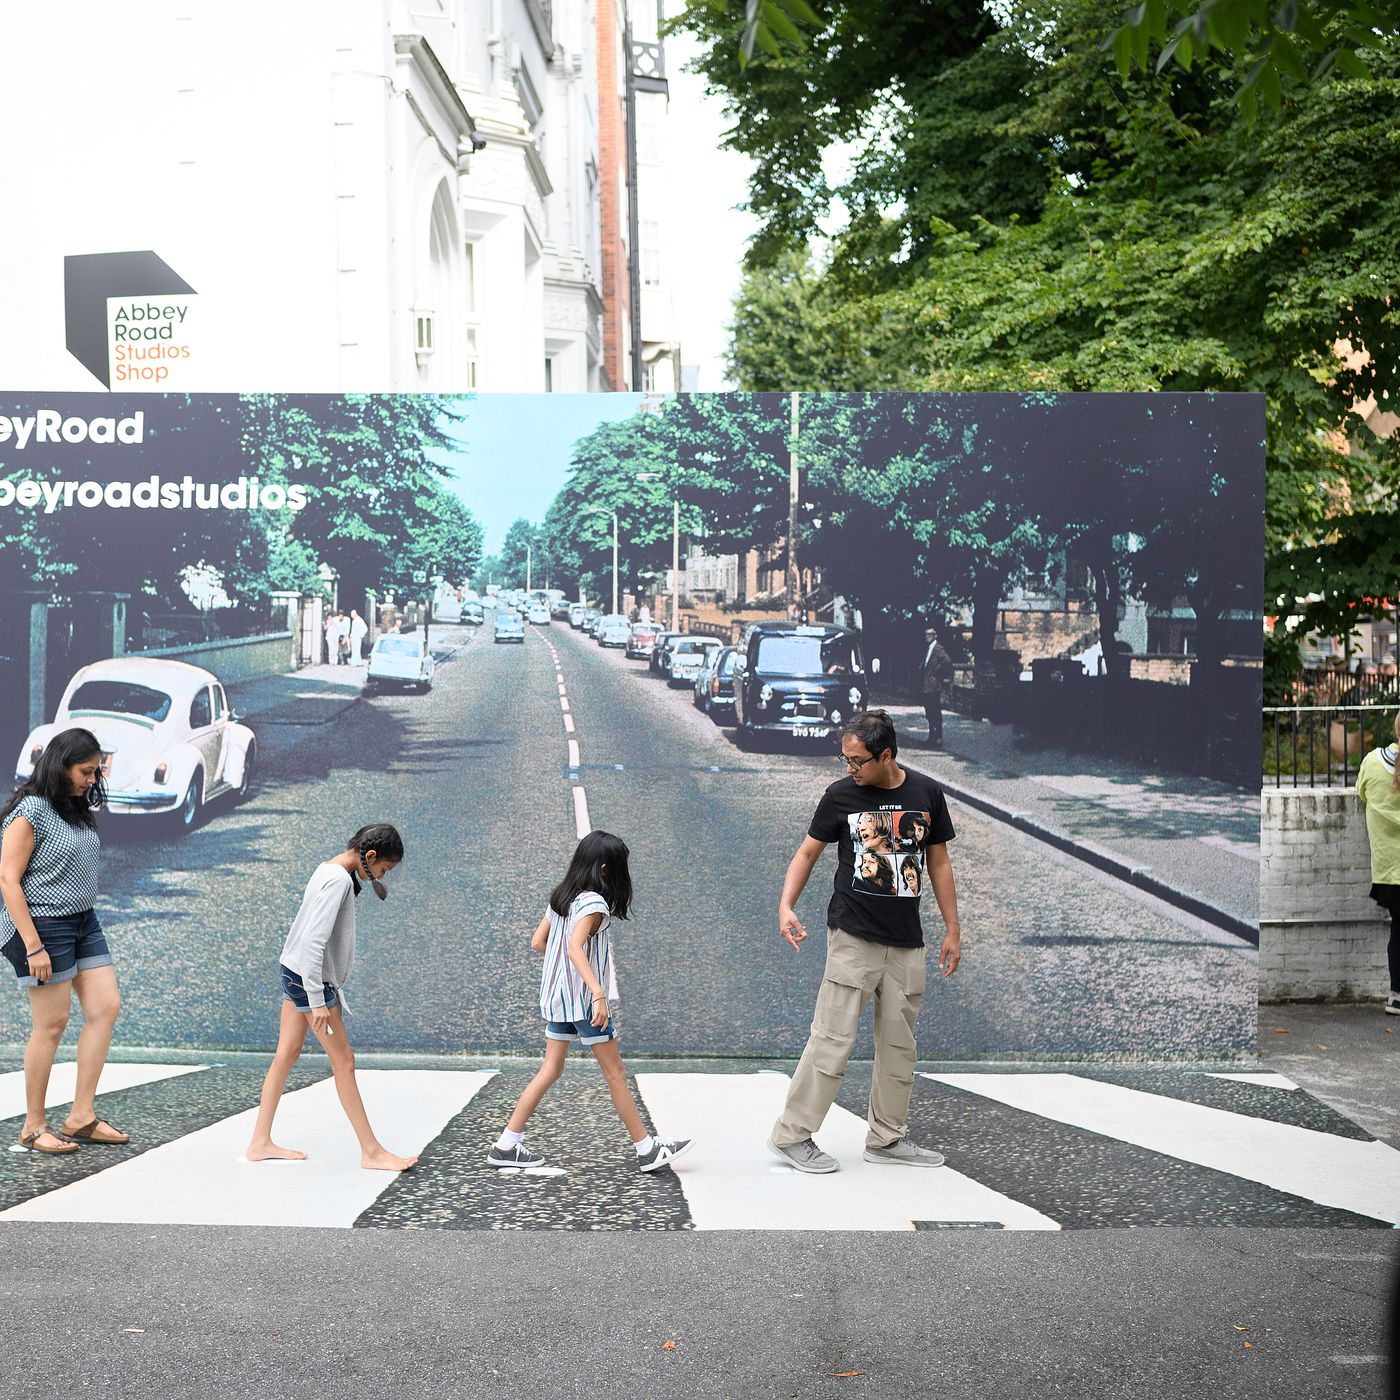 The Beatles Abbey Road The Story Behind The Cover Design Chicago Sun Times